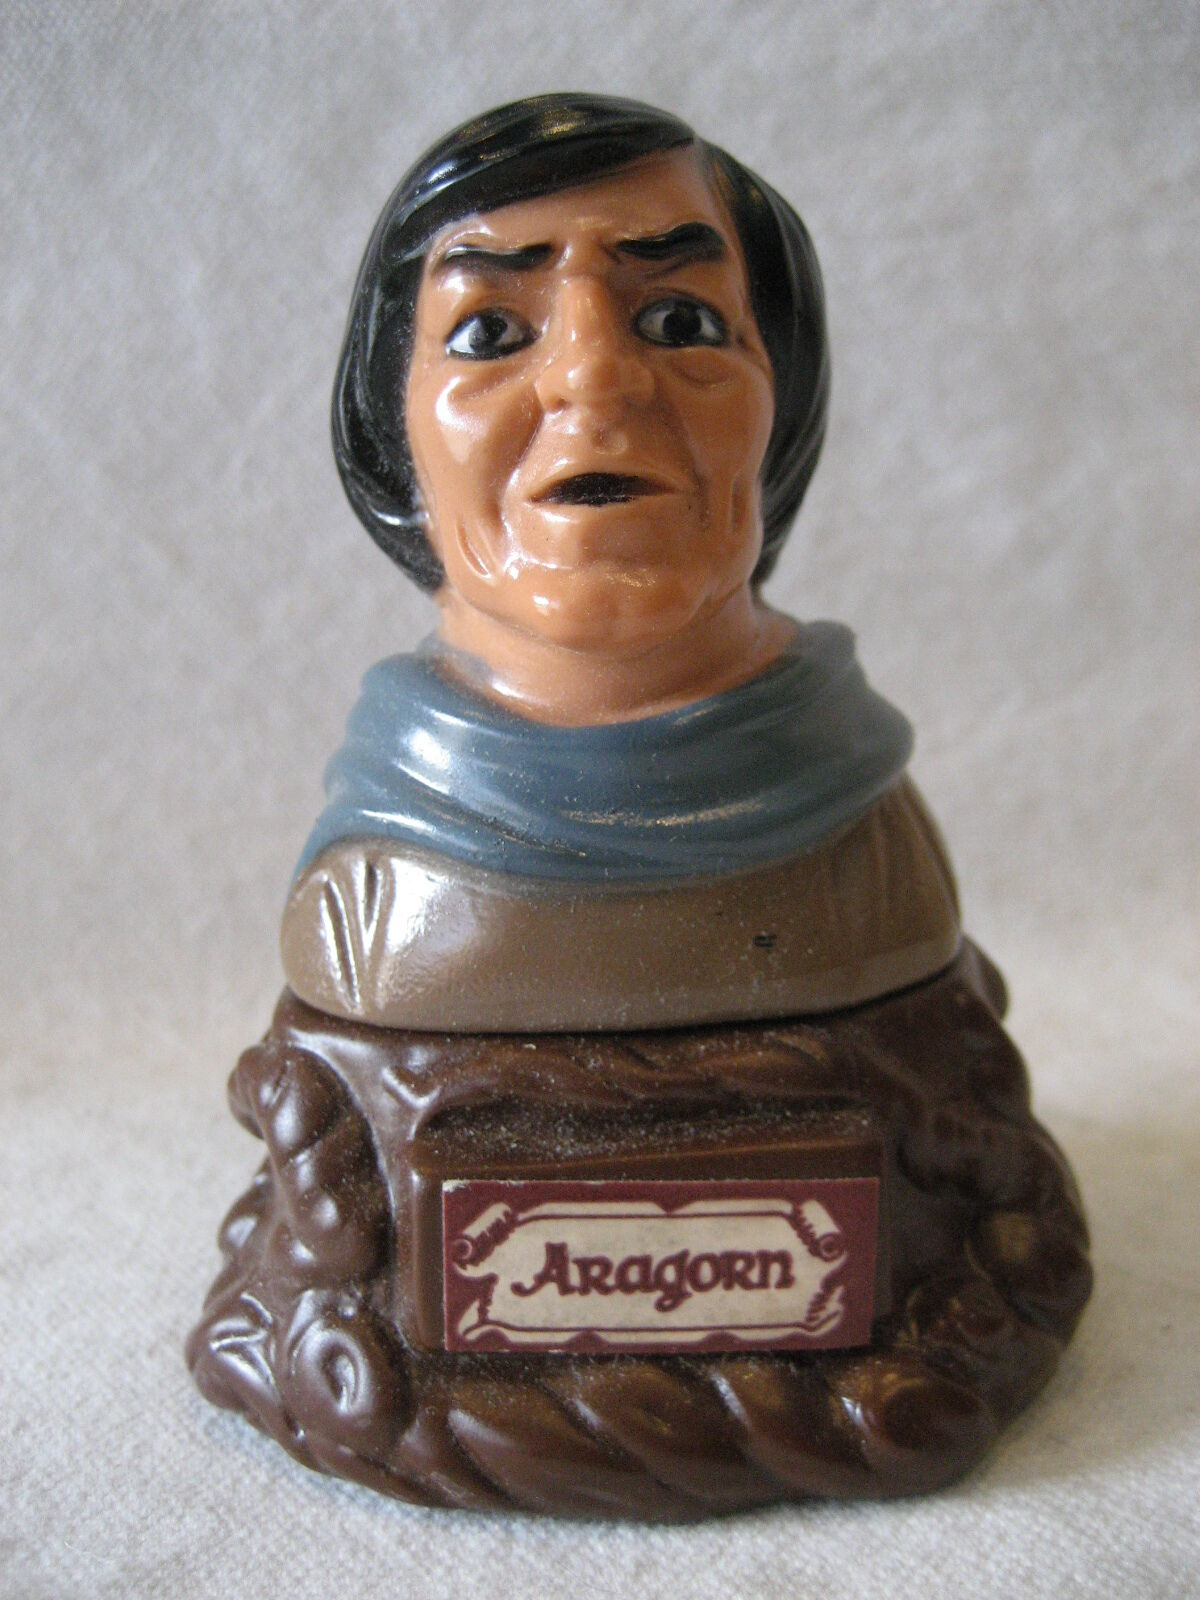 ARAGORN ARAGORN ARAGORN vintage LOTR Finger Puppet figure 1978 Tolkien Lord of the Rings w  BOX a286e7